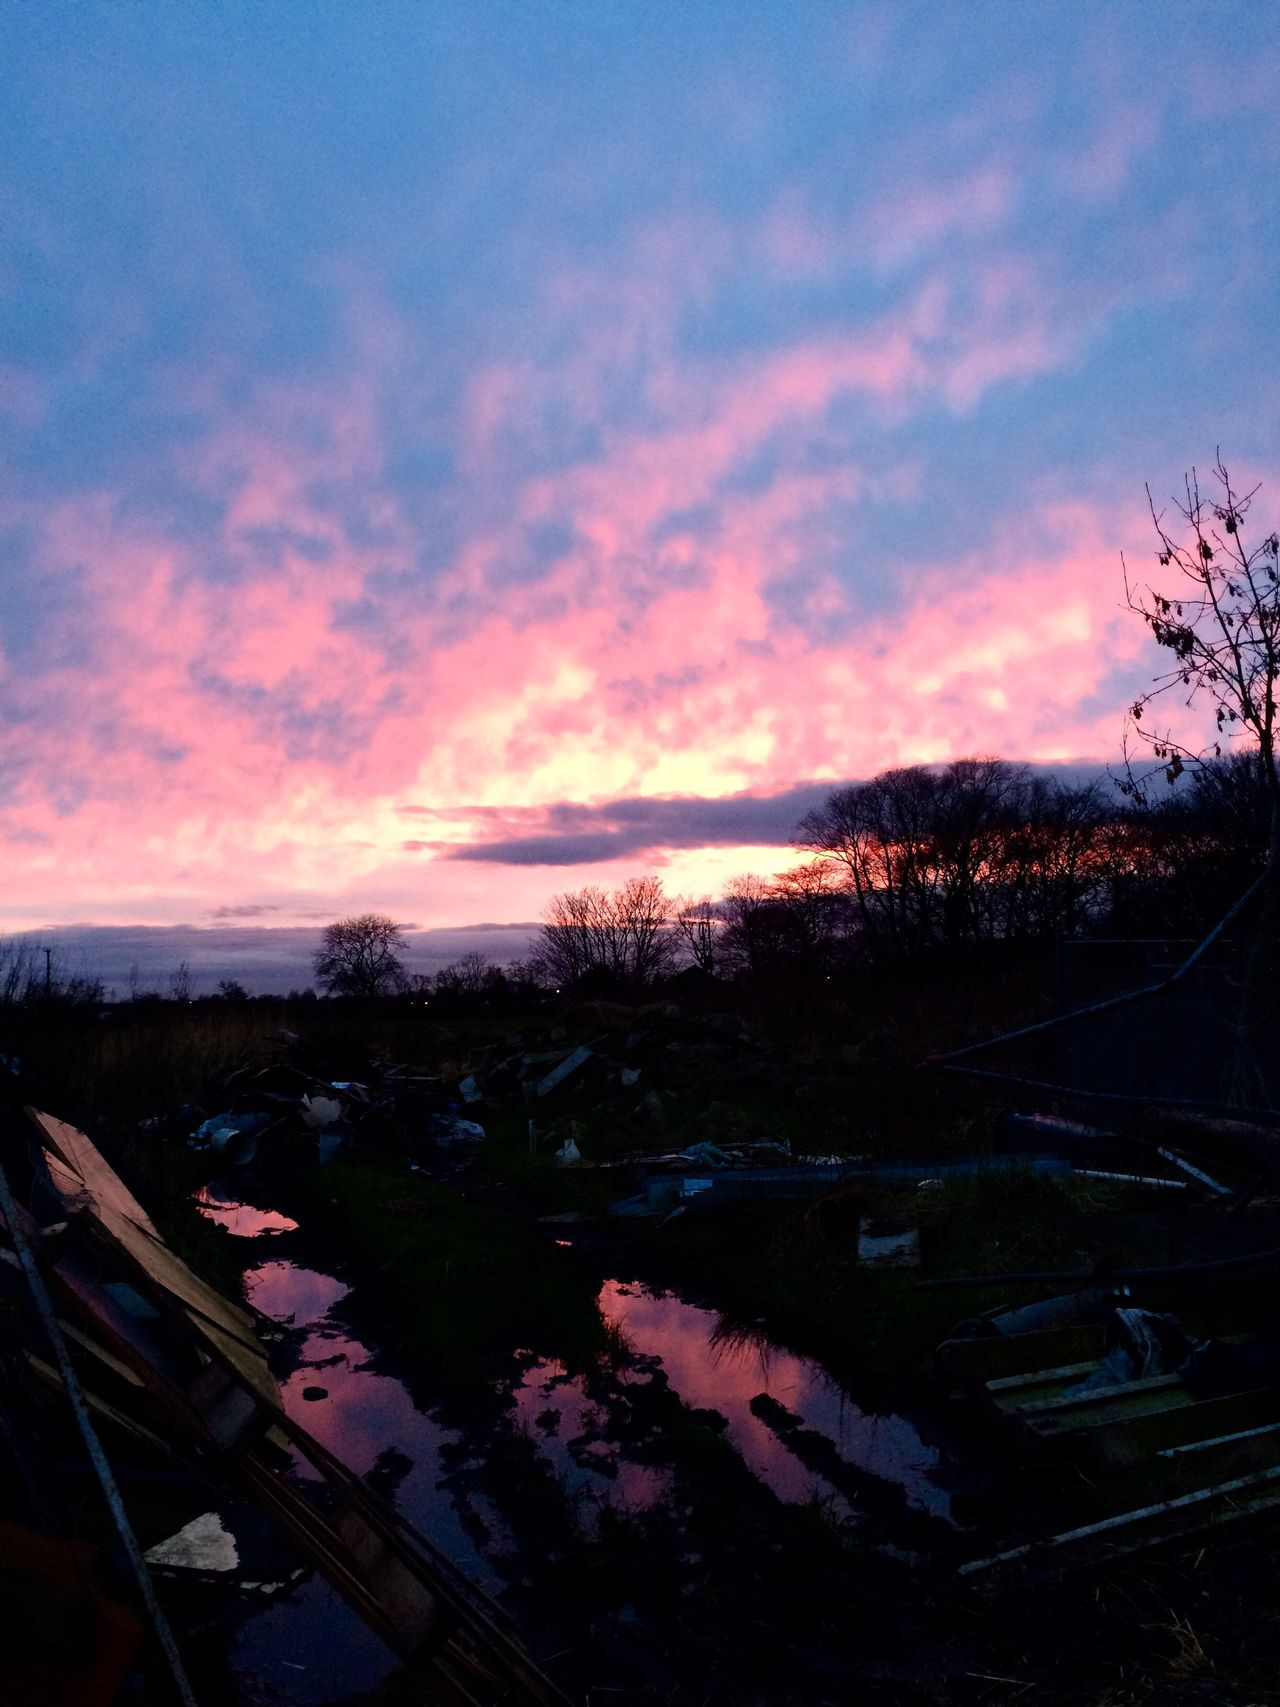 Red sky at night, shepherds delight. RedSky Clouds Puddles Water Stables Waste Rubbish Junk